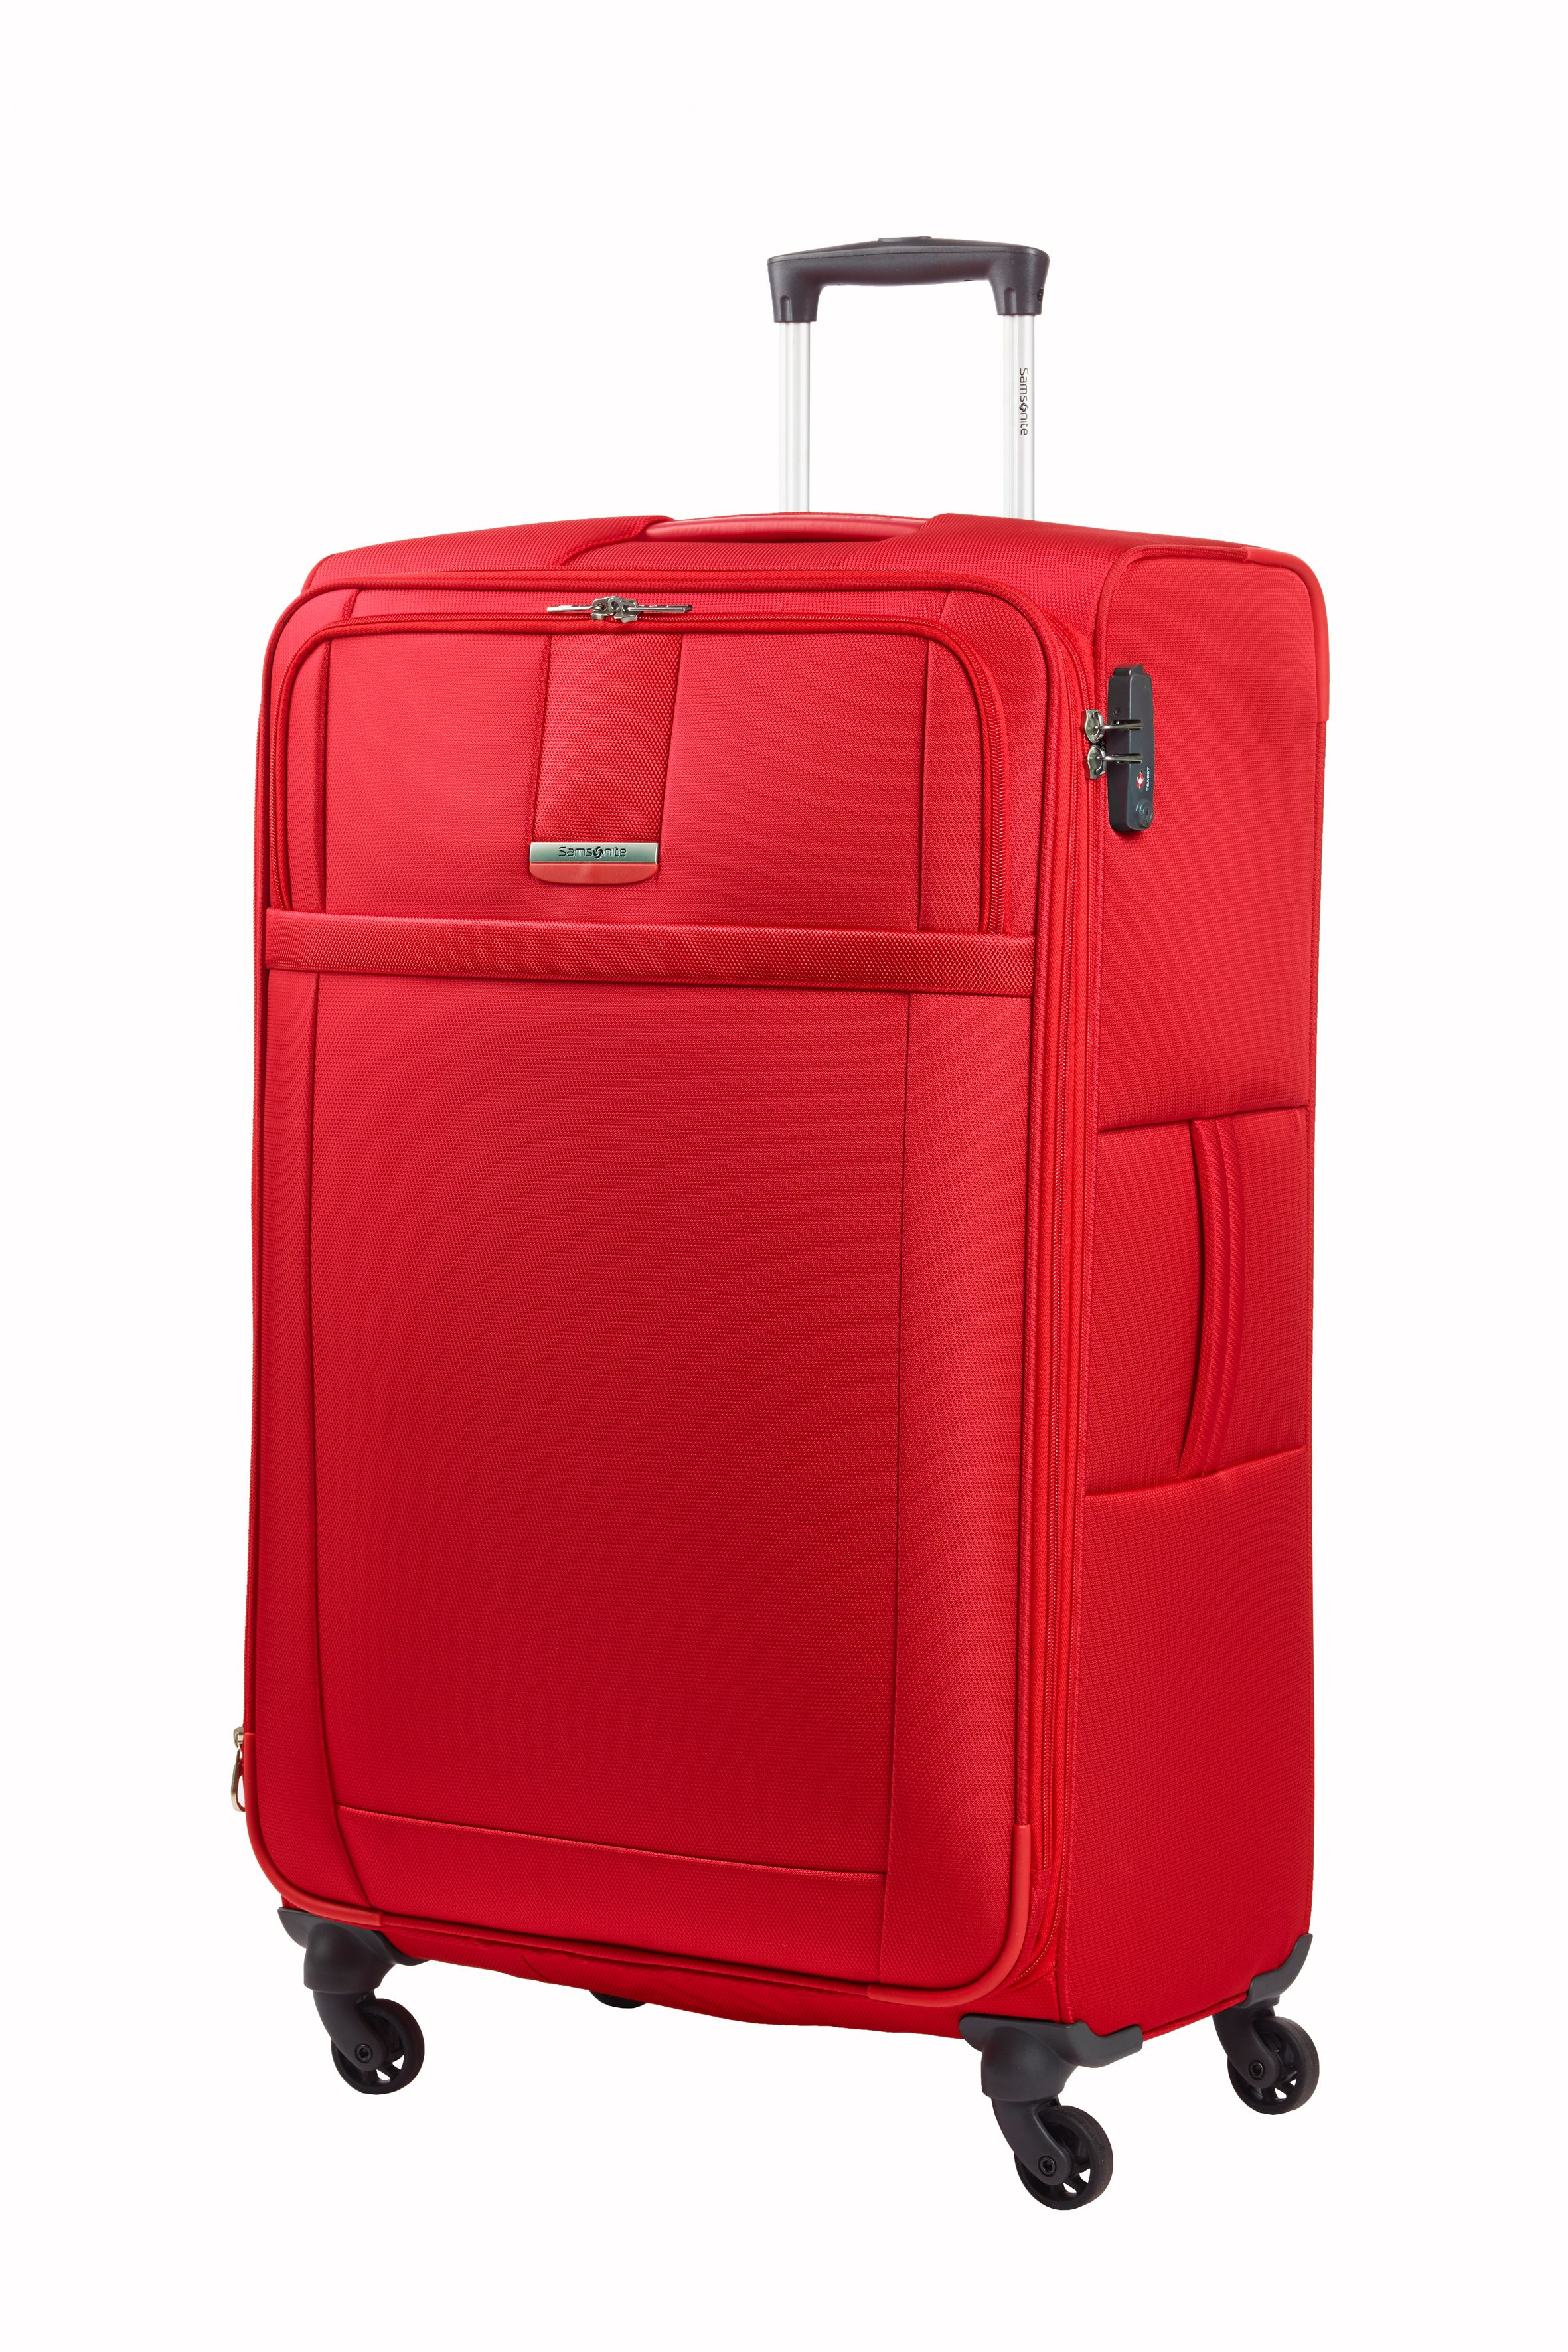 Samsonite askella classic4 wheel soft medium case review for Quality classic house of fraser